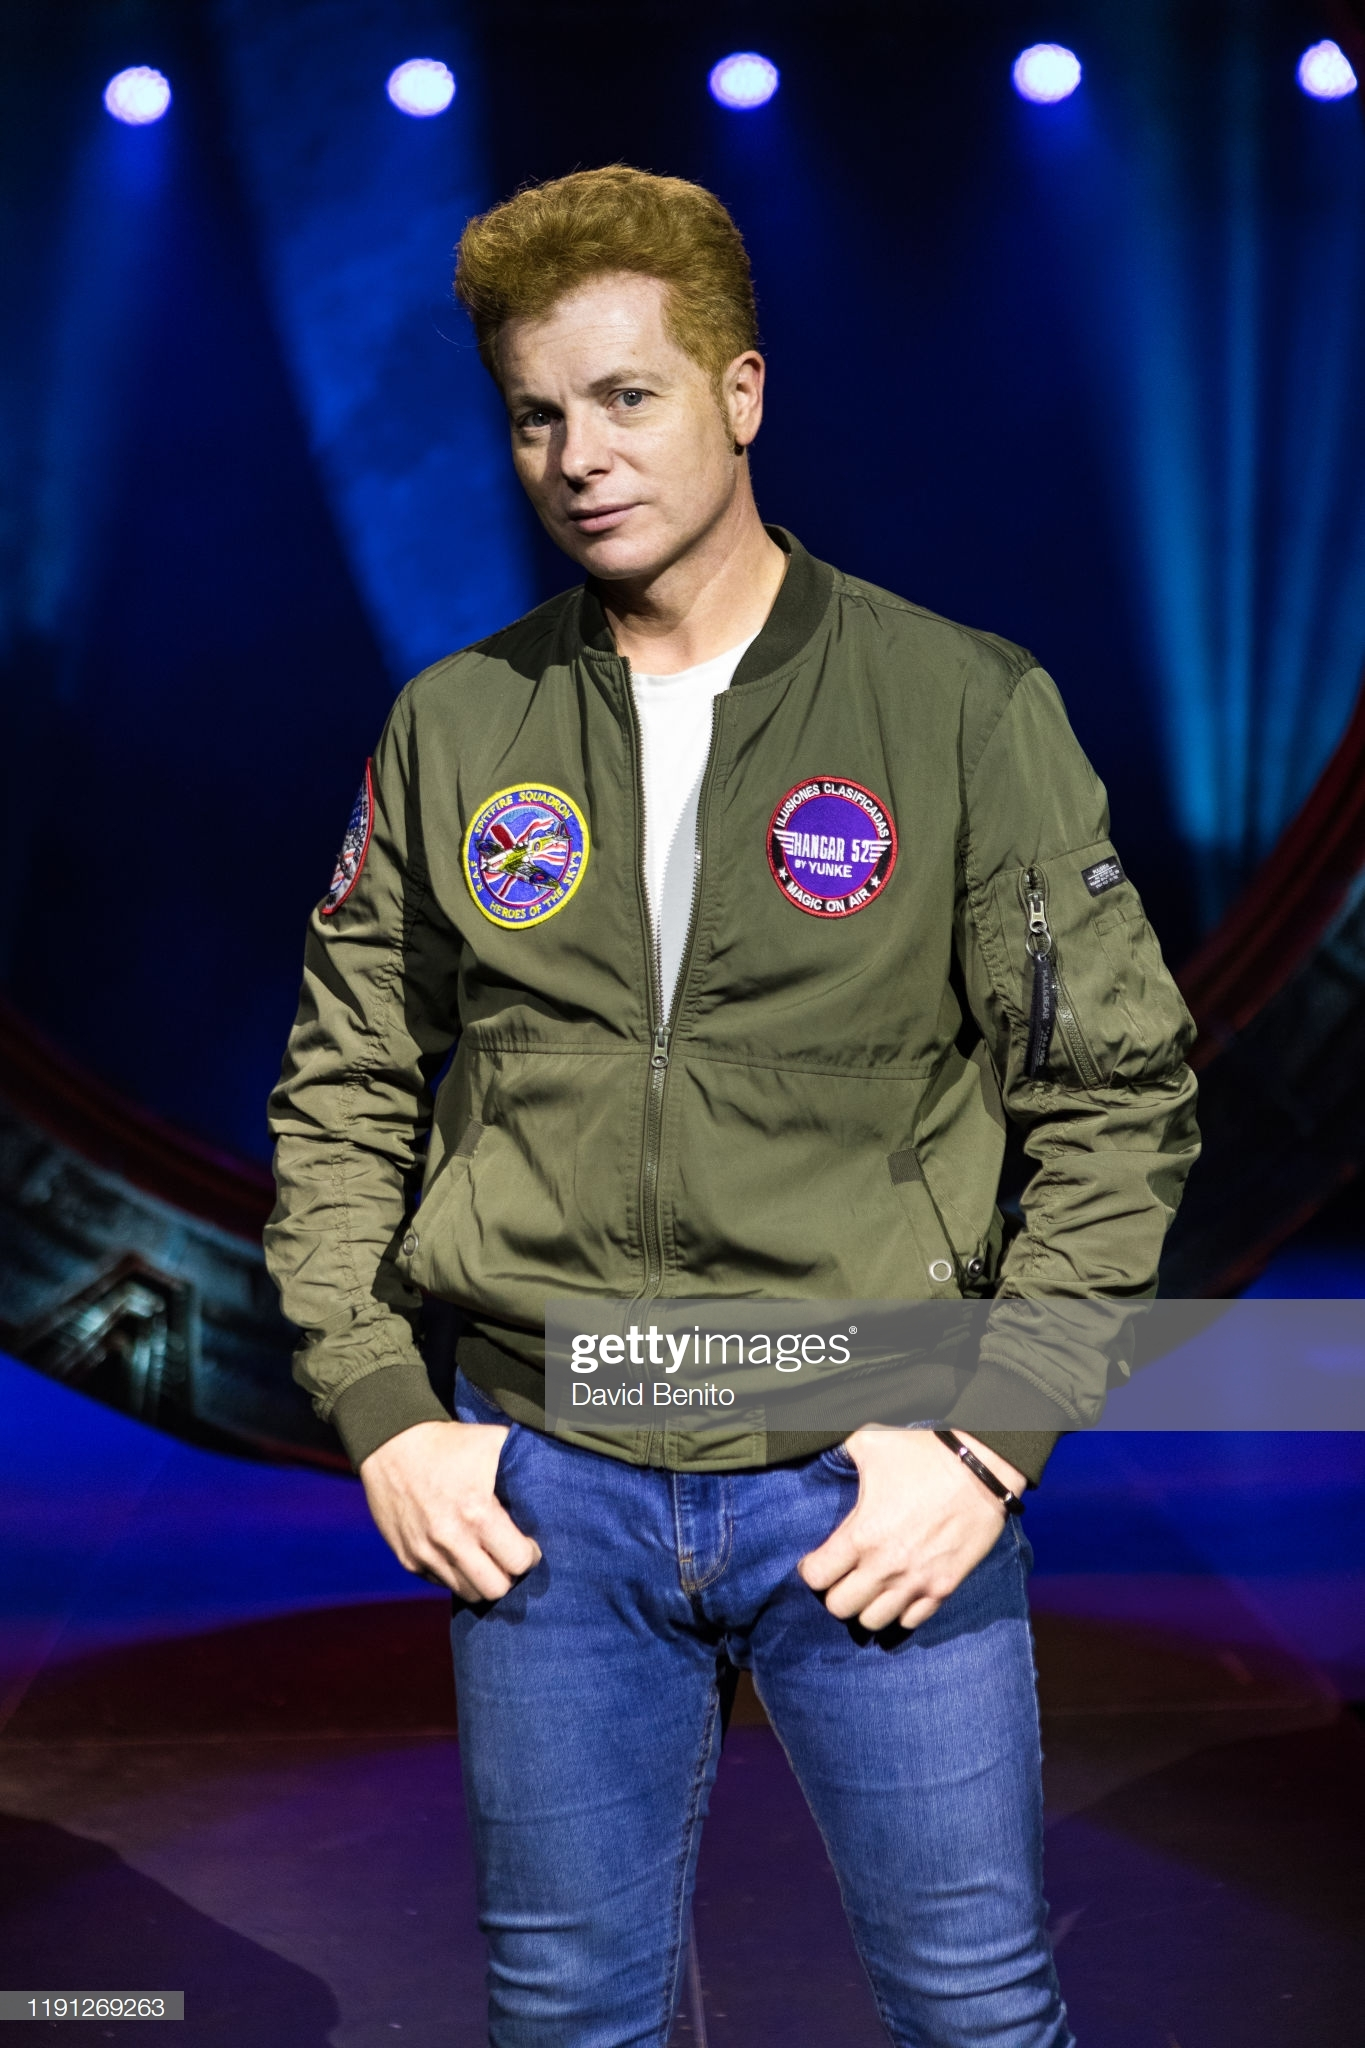 gettyimages-1191269263-2048x2048